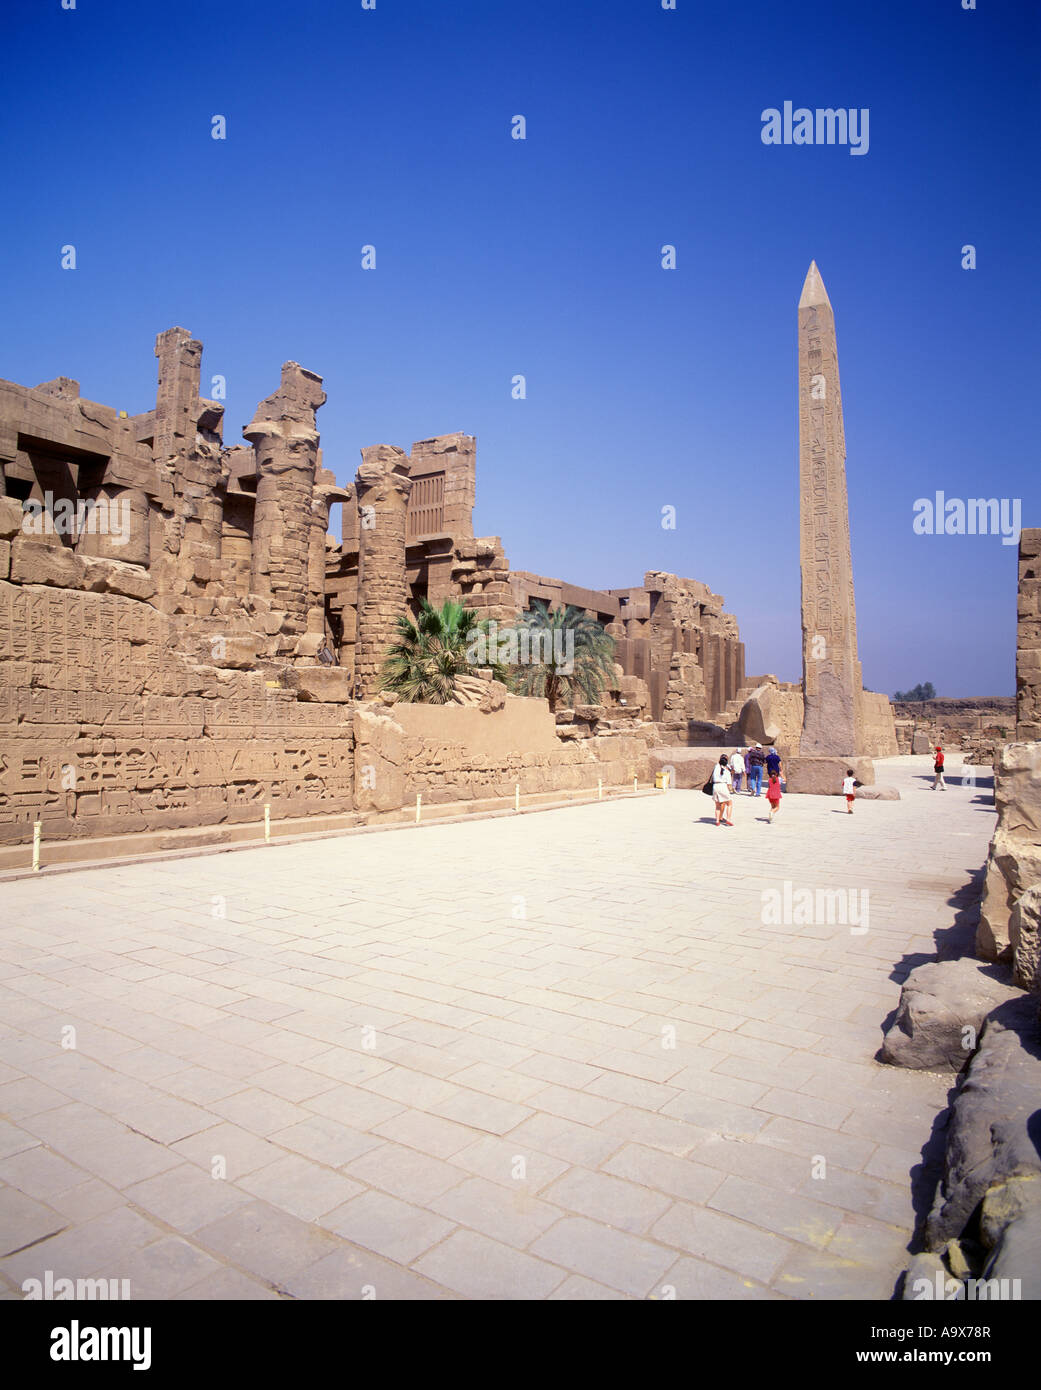 Amun Re Photographic Arts: Egypt Great Temple Amun Re Stock Photos & Egypt Great